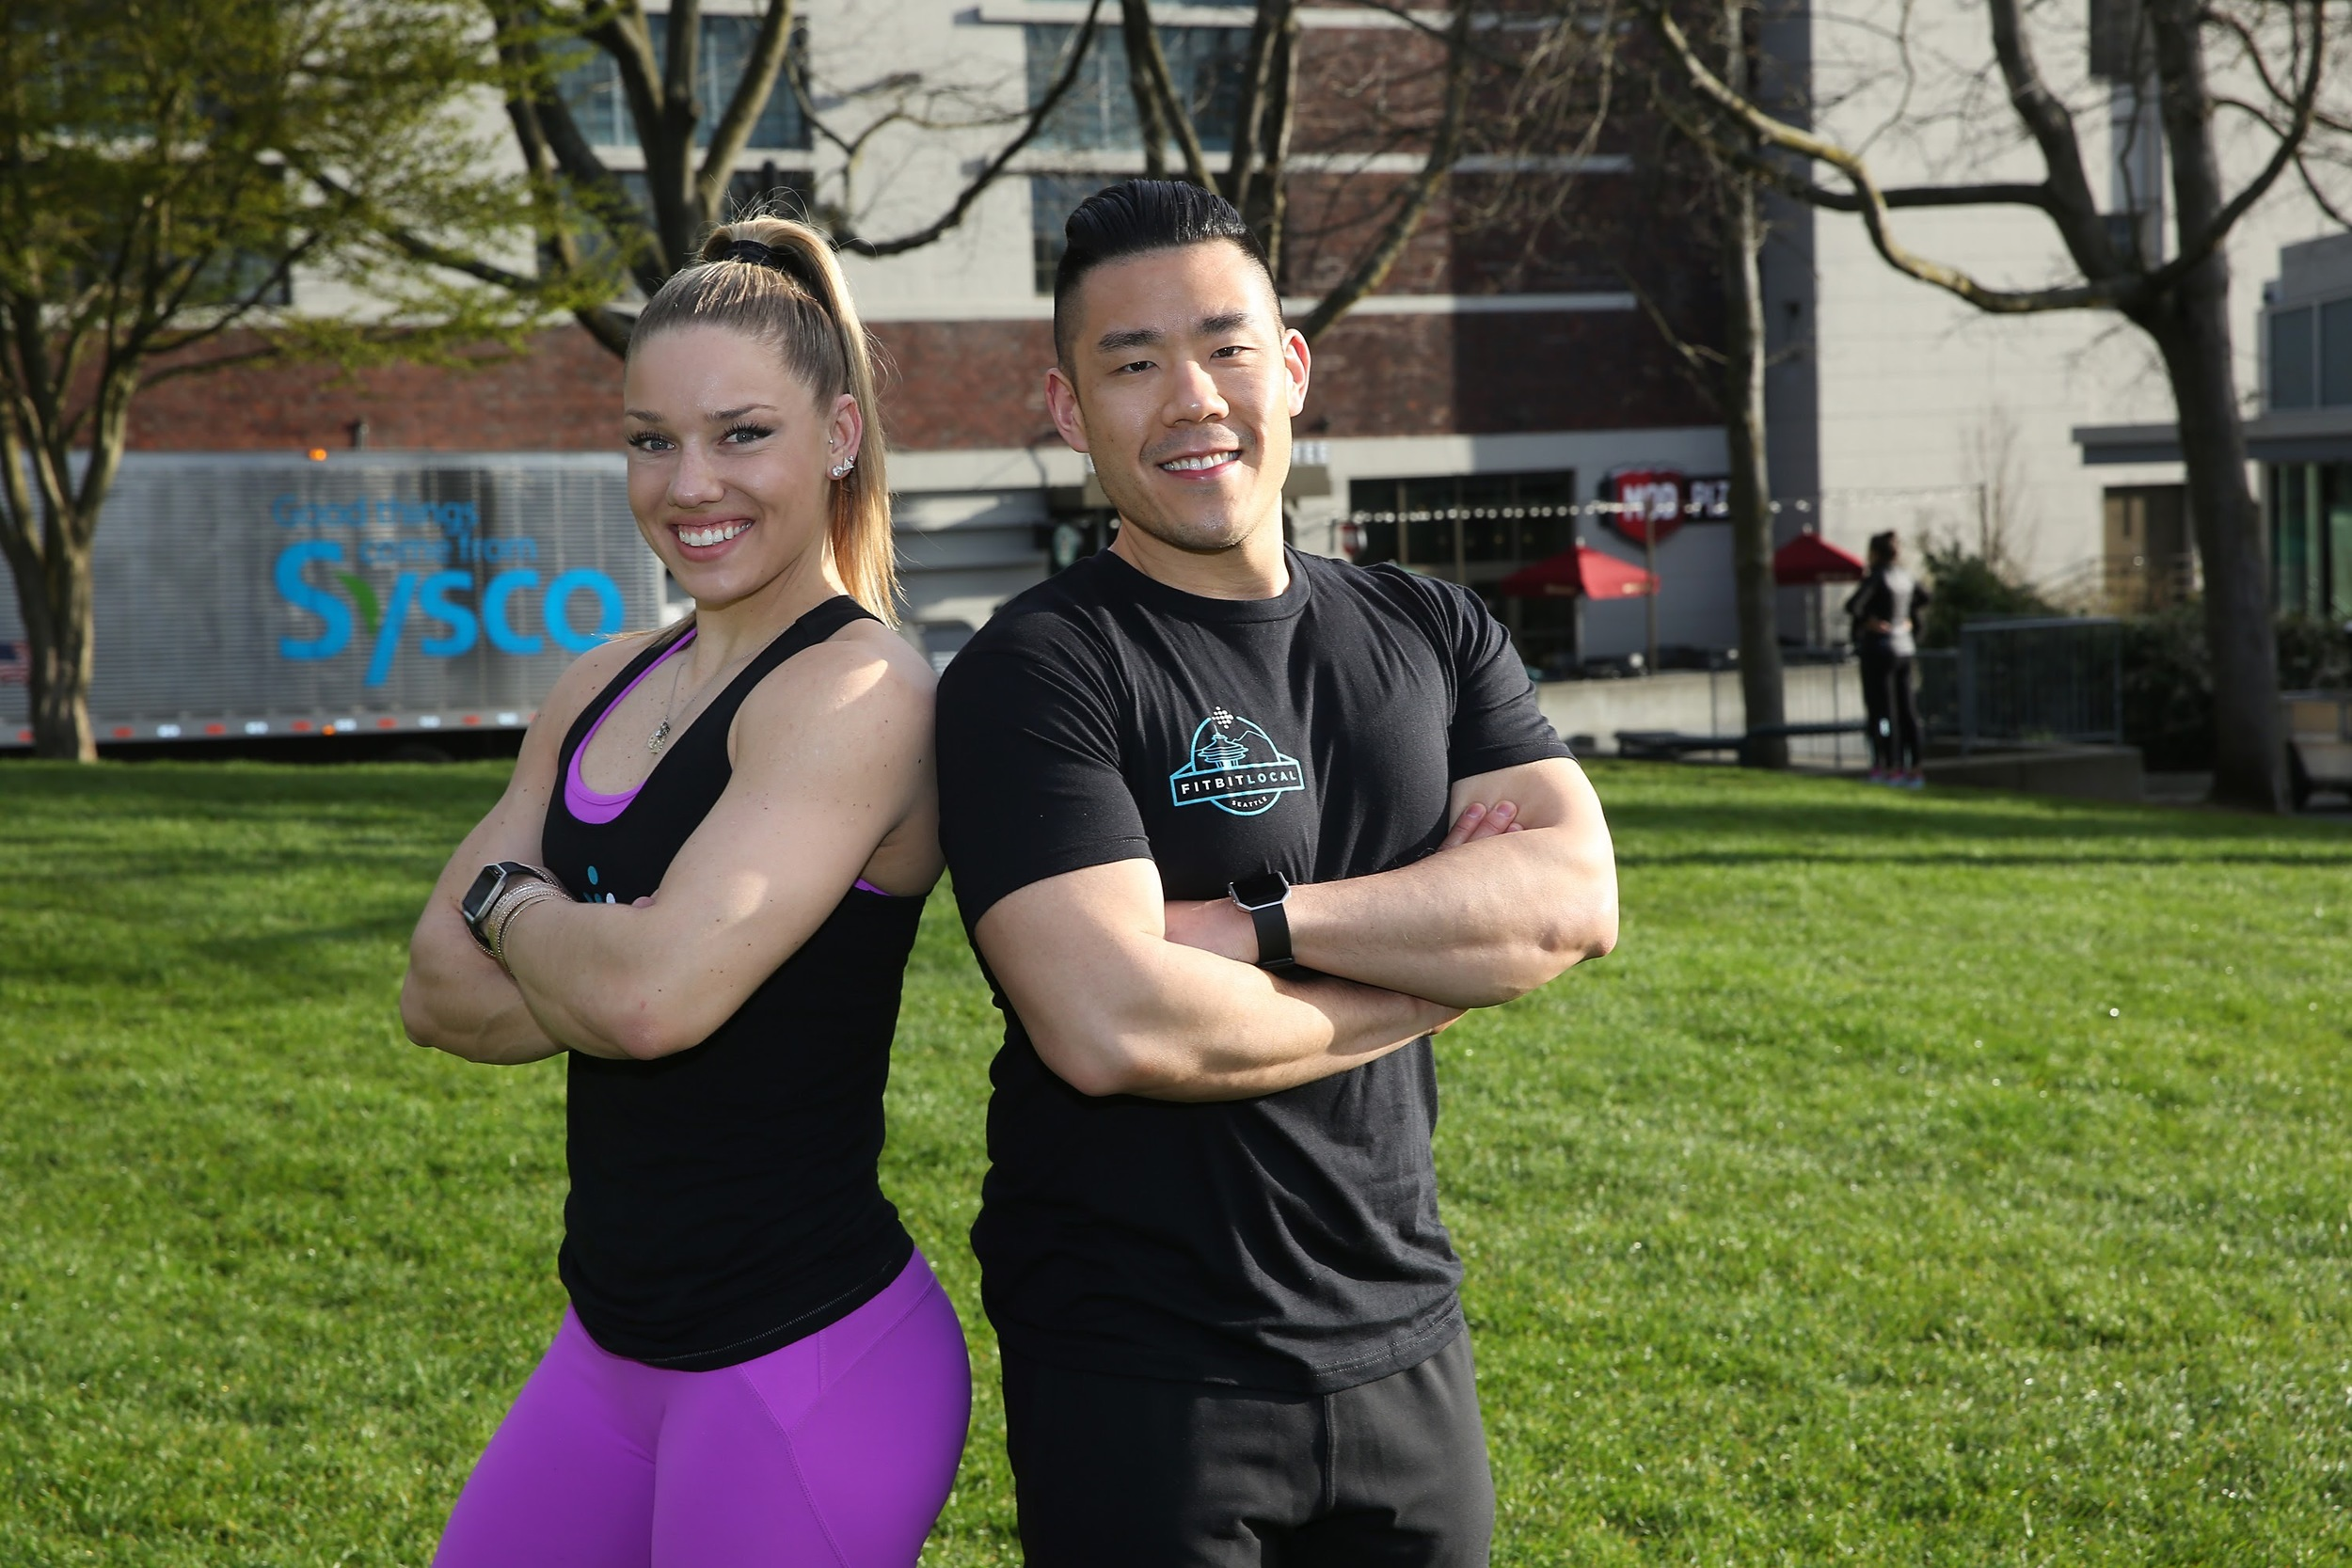 Fitbit Local Seattle ambassadors, Kaisa Keranen and Kevin N